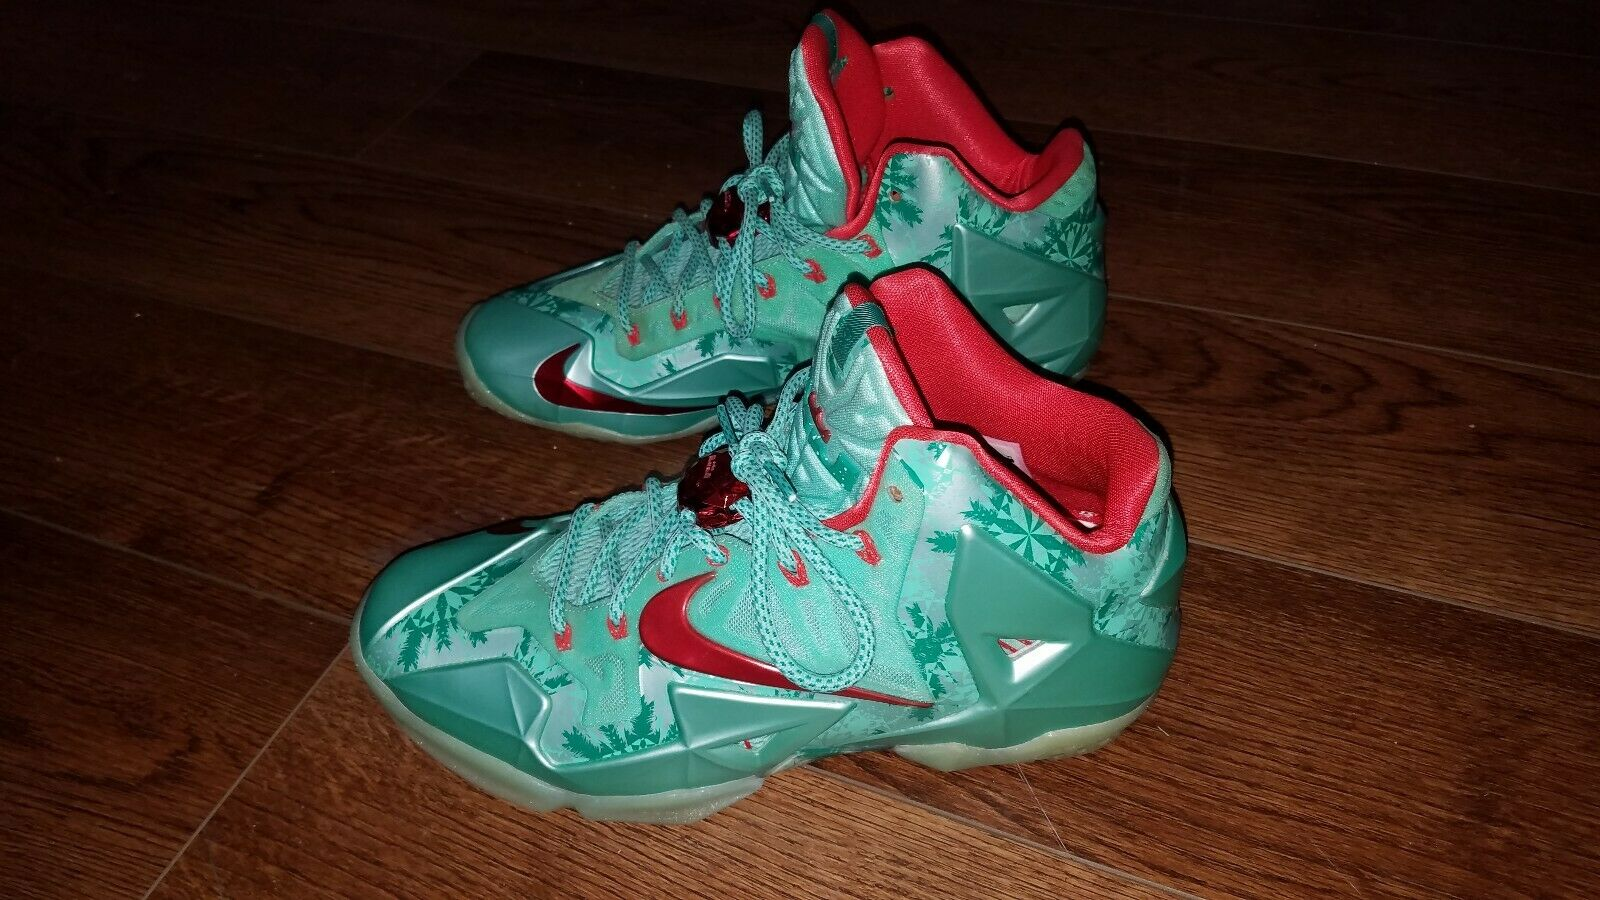 Lebron 11 christmas. Size 9.5.    I give them a 8 10. Send offers my way   a6b4b7